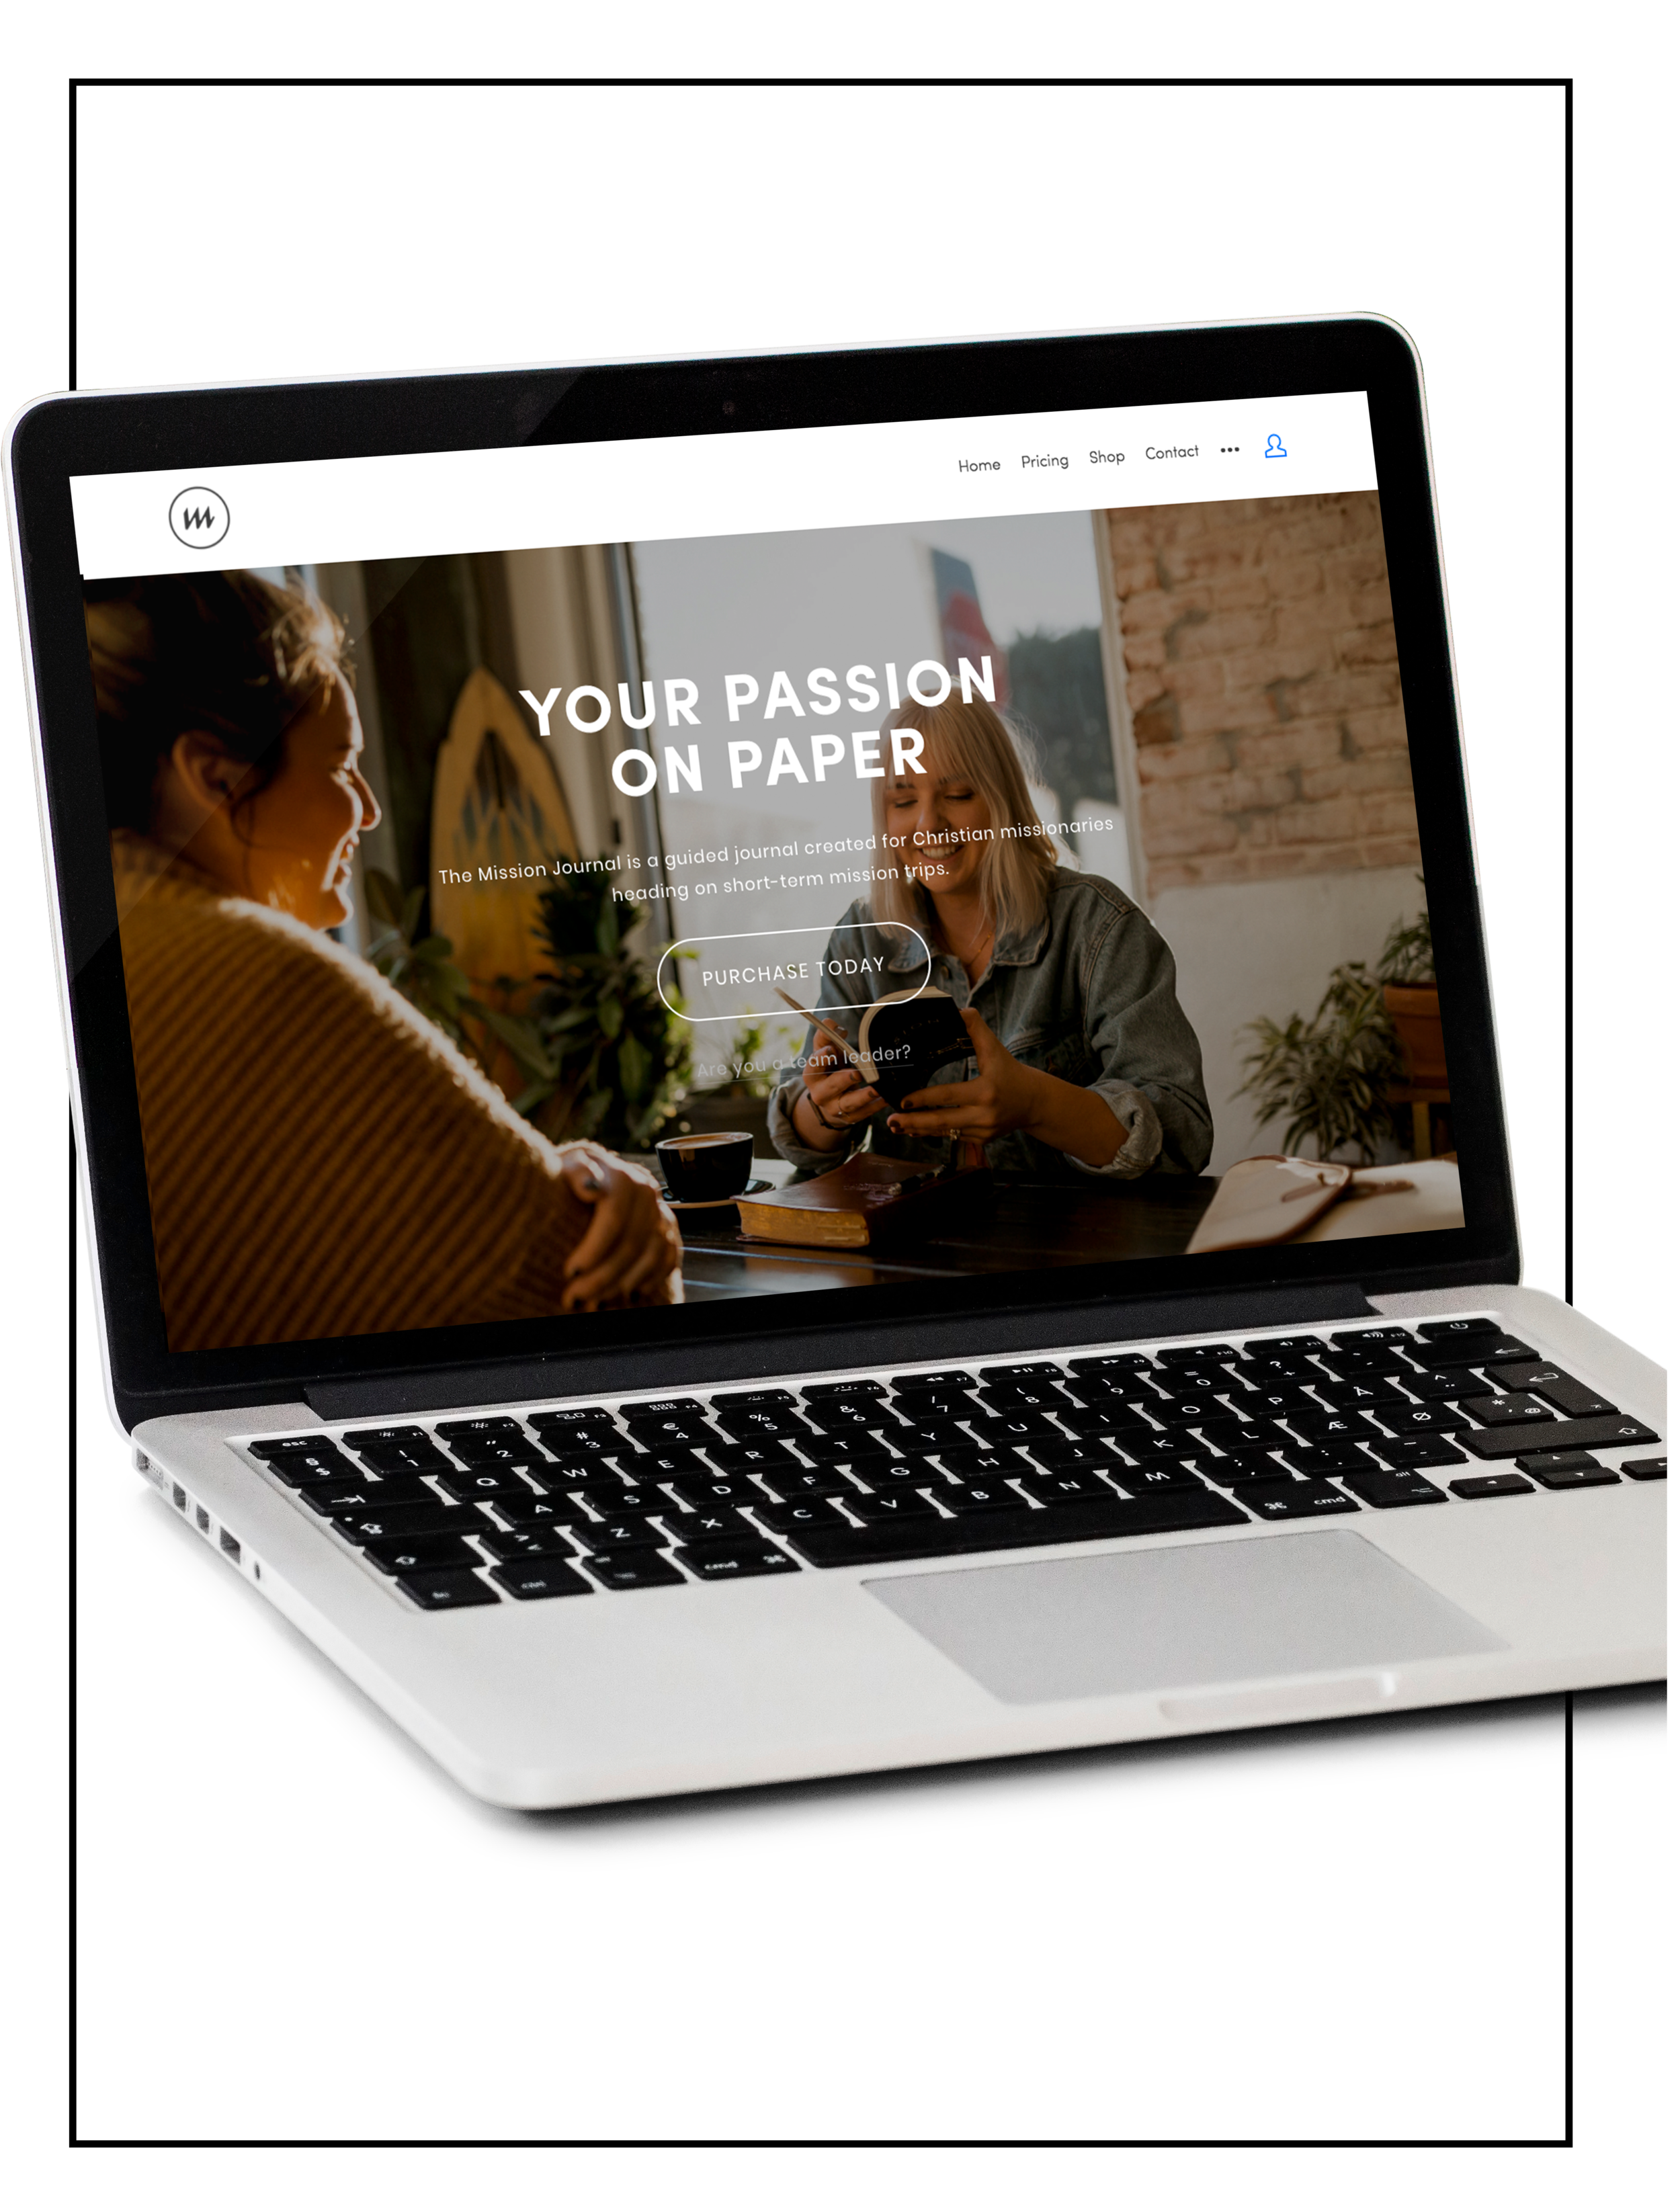 Showcasing an image of a laptop with a website build of Spacebar Agency - the Mission Journal